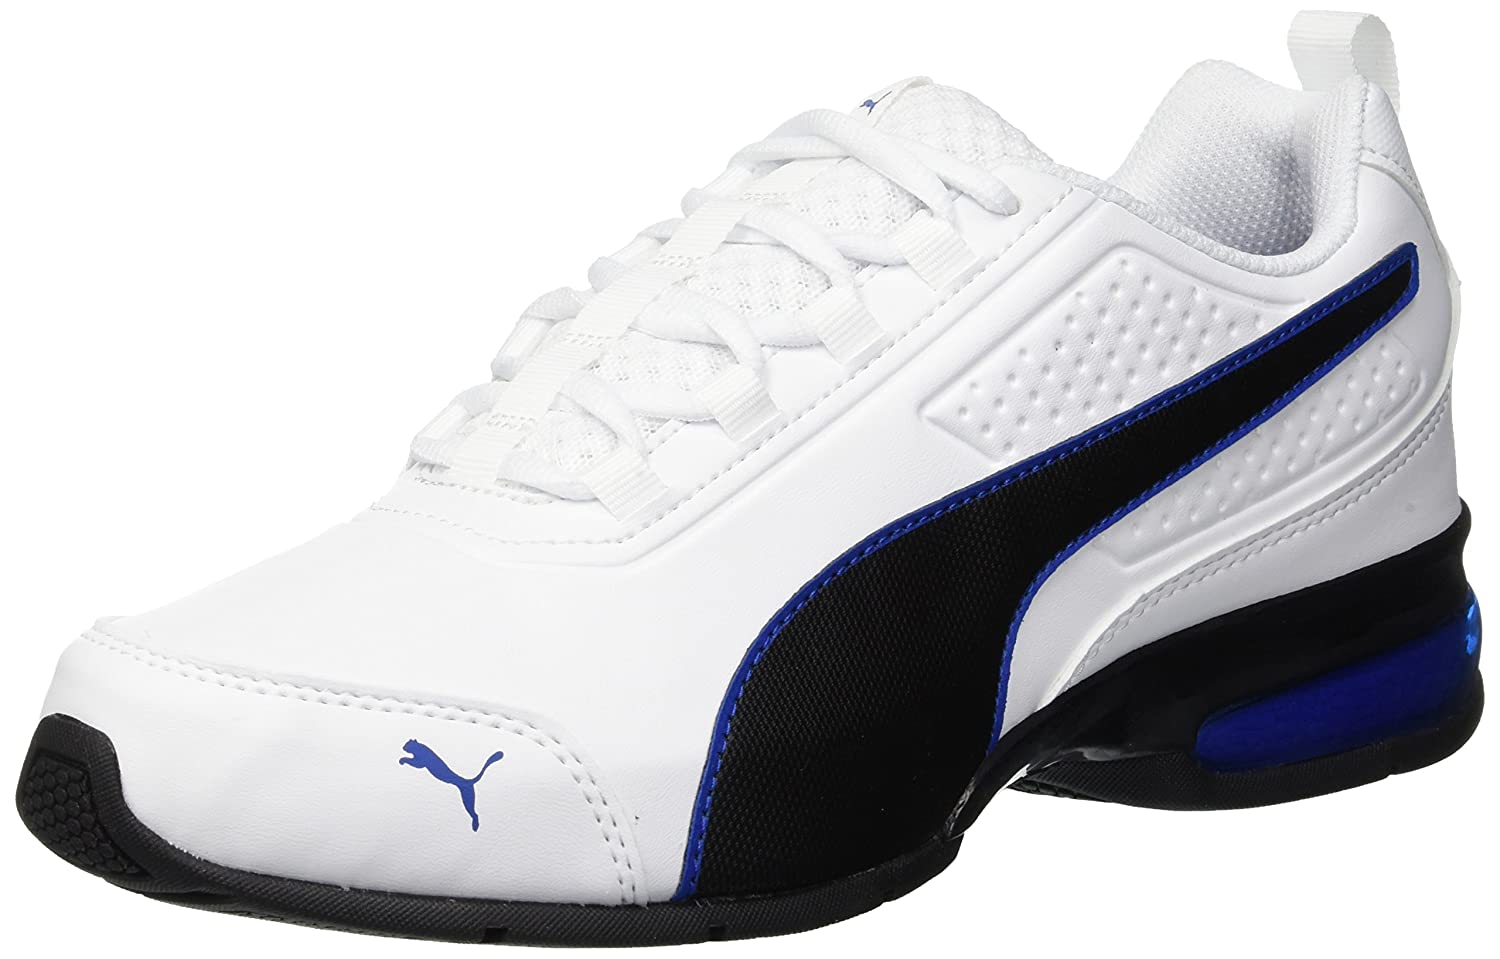 Puma Unisex Adults' Leader Vt Sl Low-Top Sneakers 365291